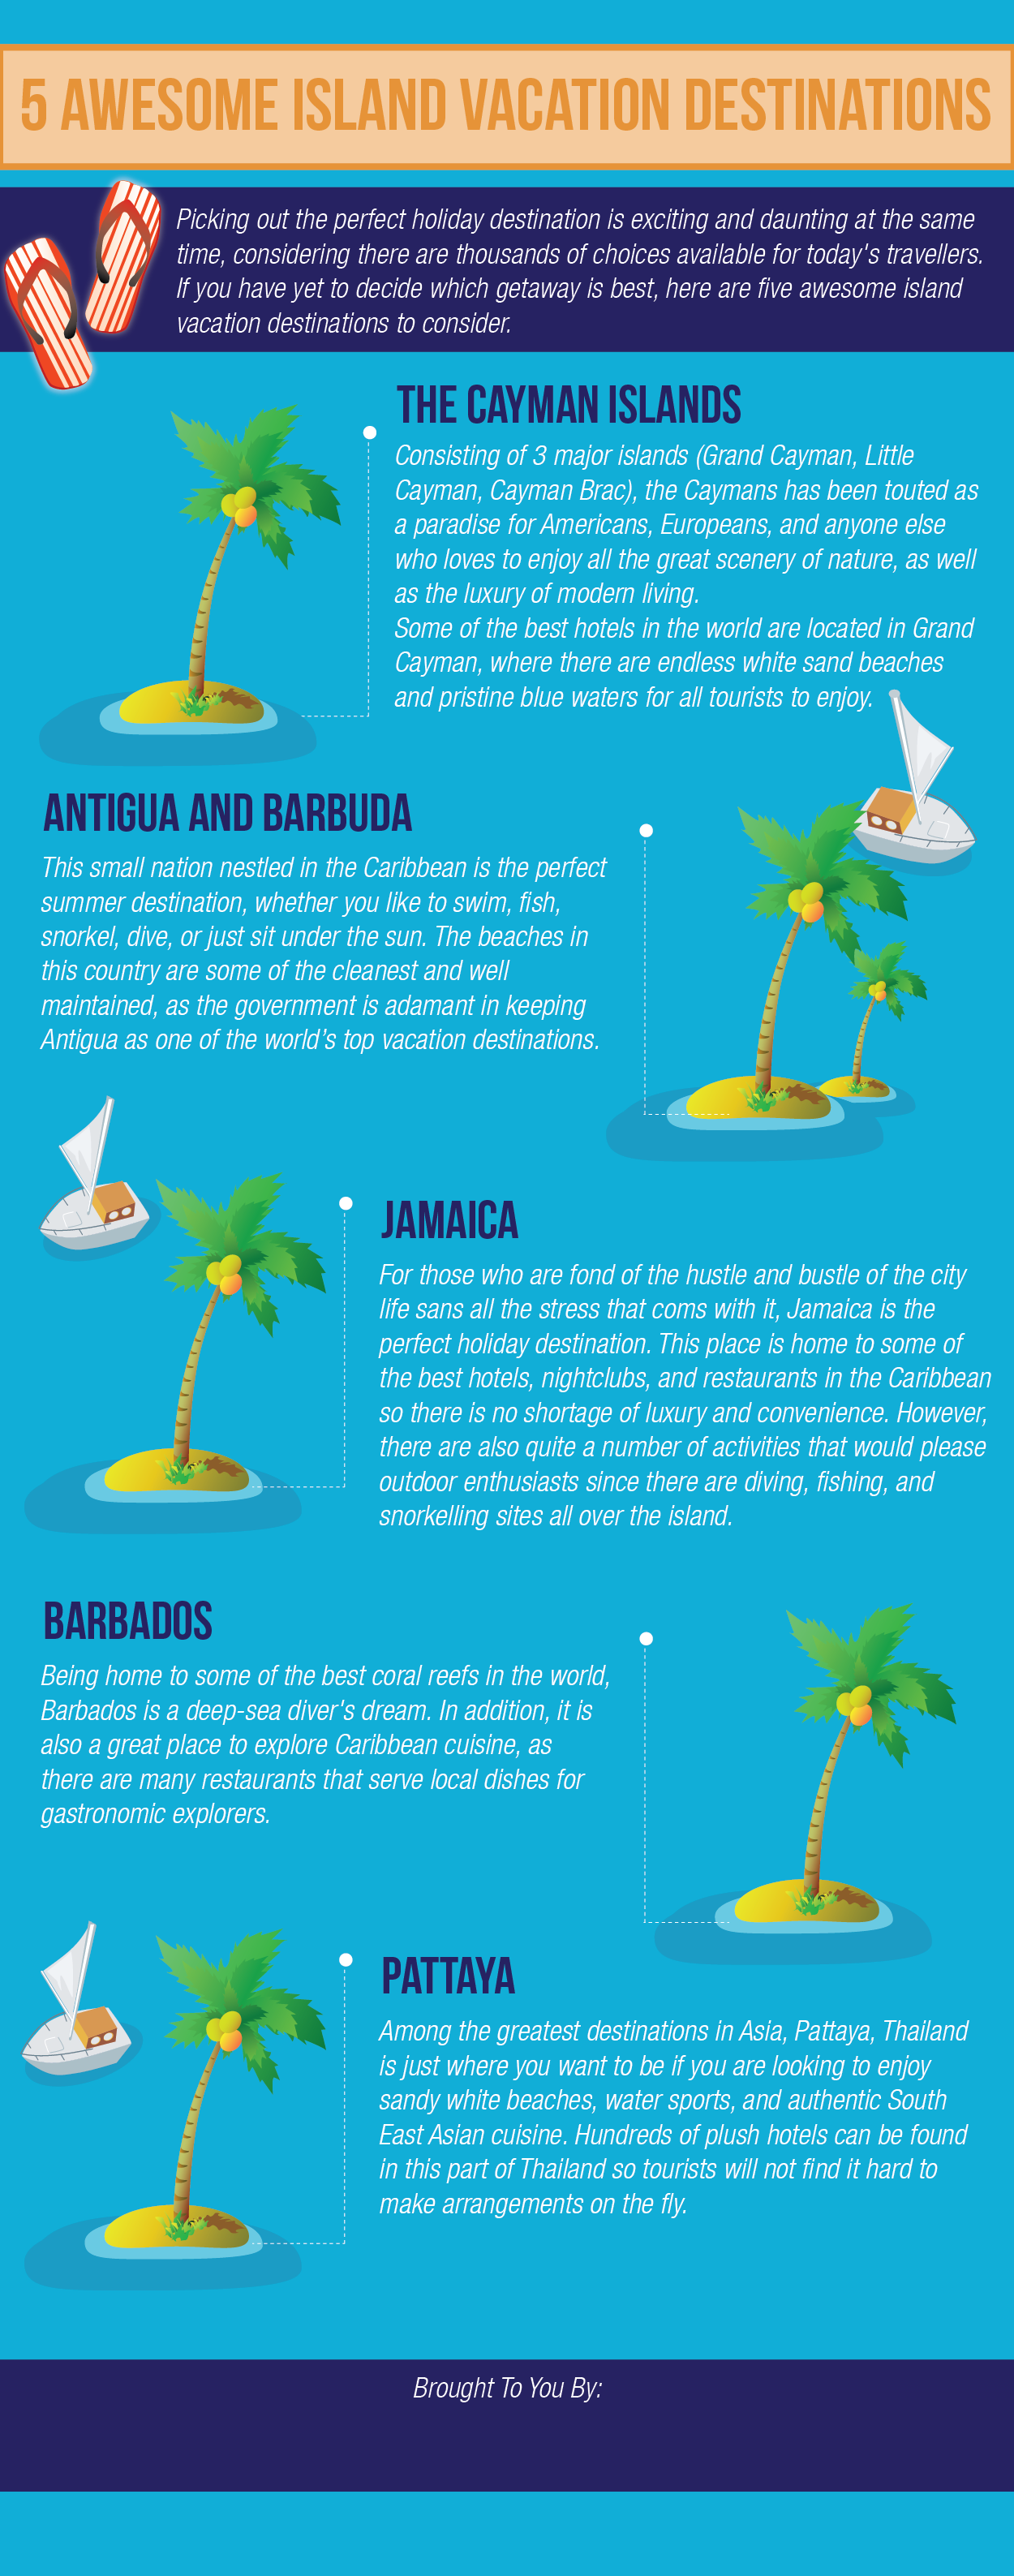 5 Awesome Island Vacation Destination